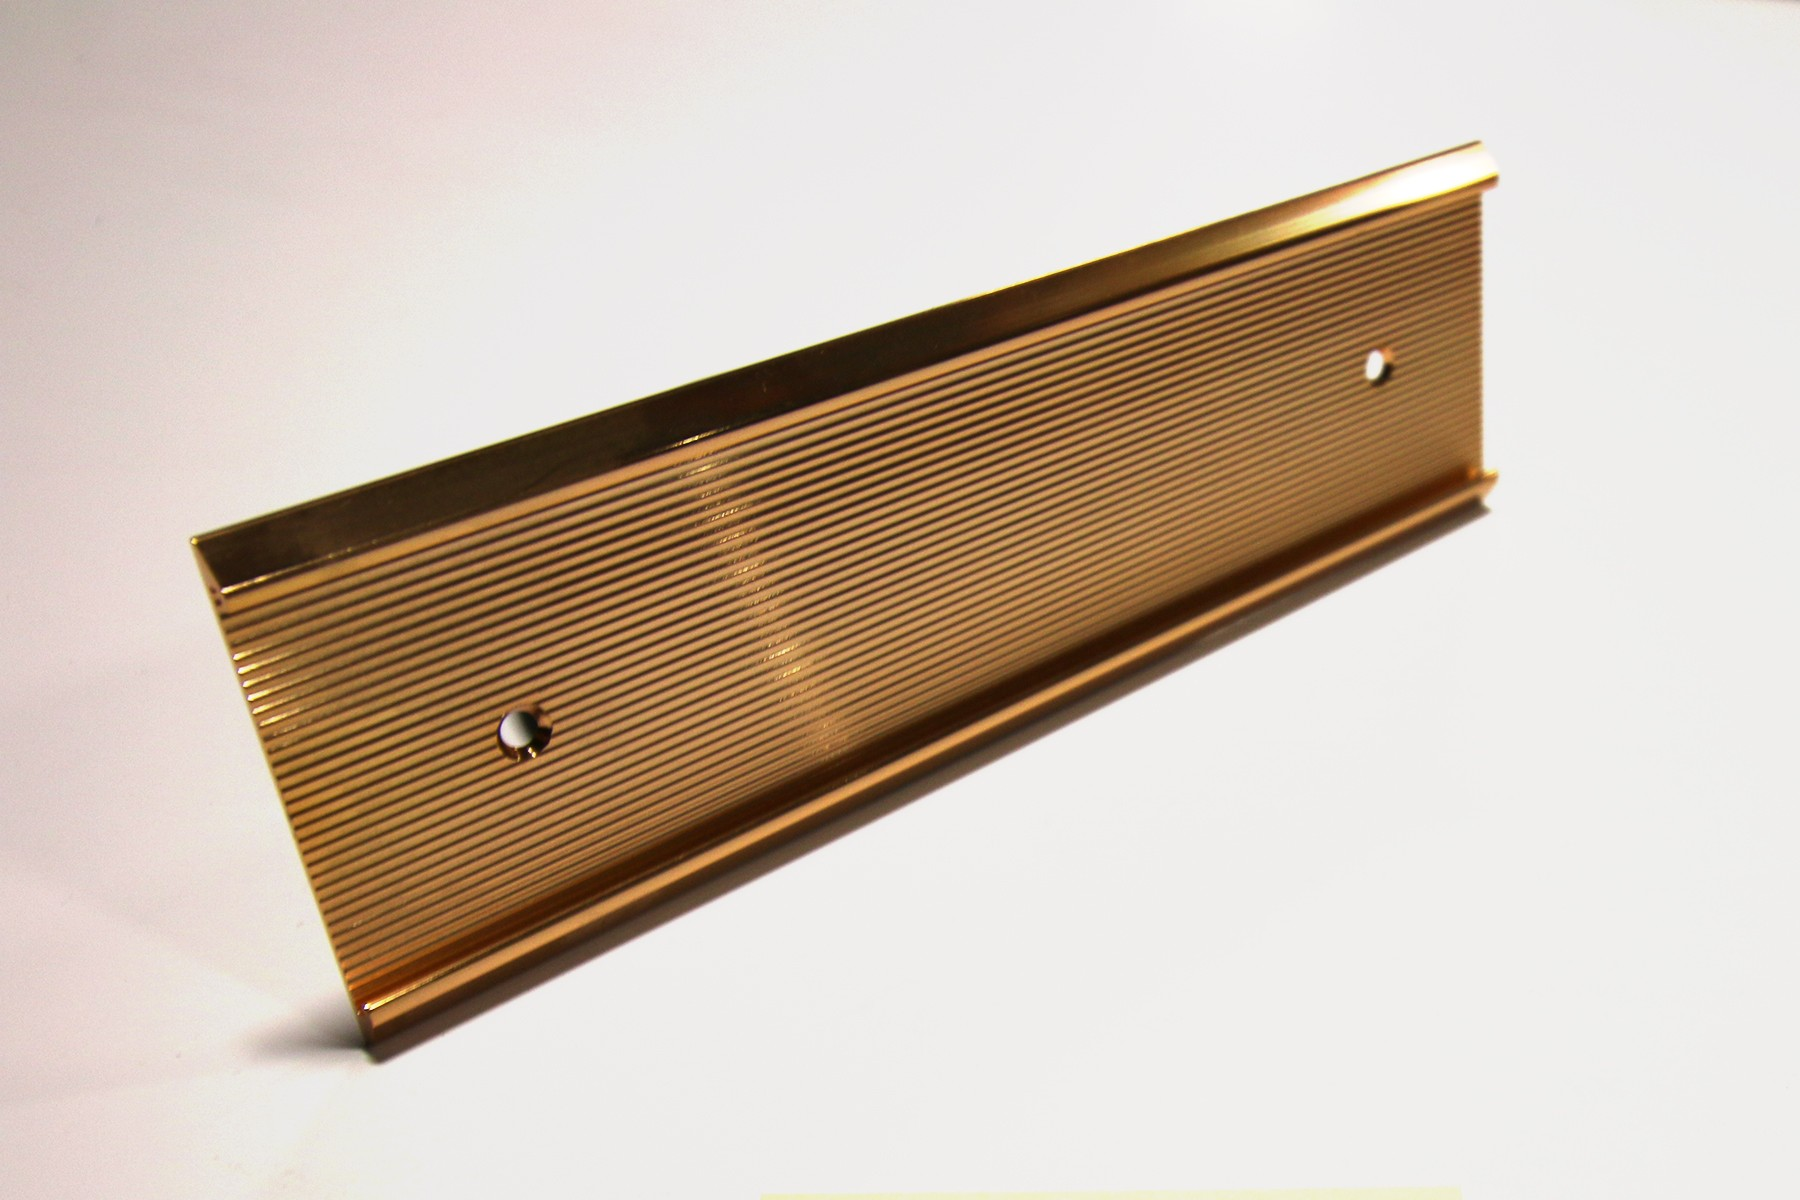 2 x 12 Ribbed Wall Holder, Gold